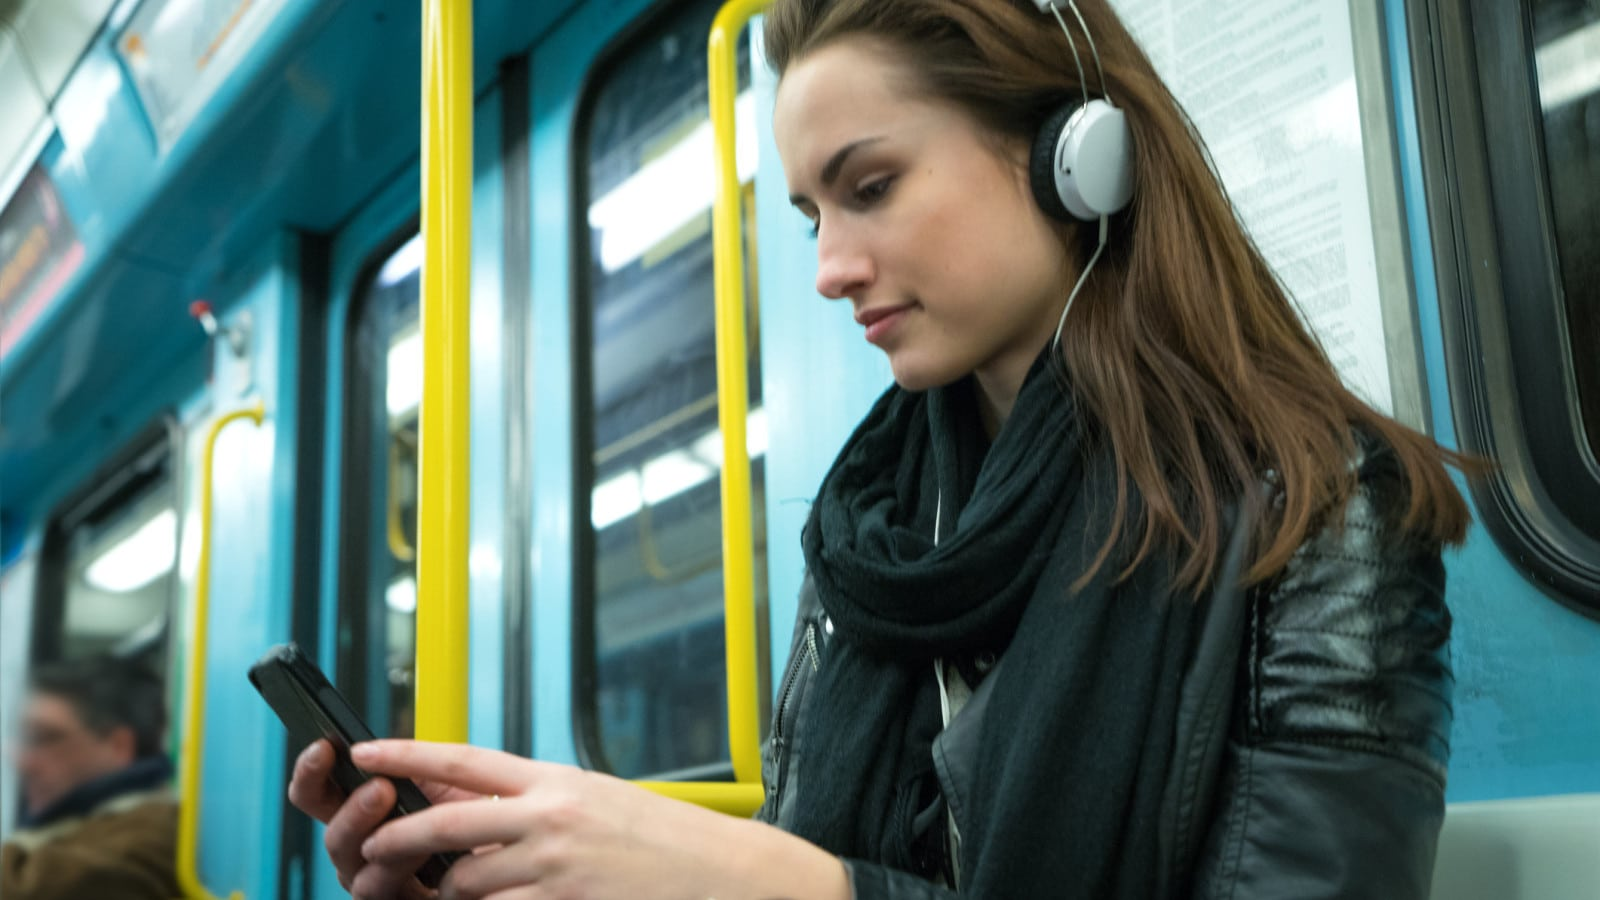 Woman Listening To Music On Subway Train